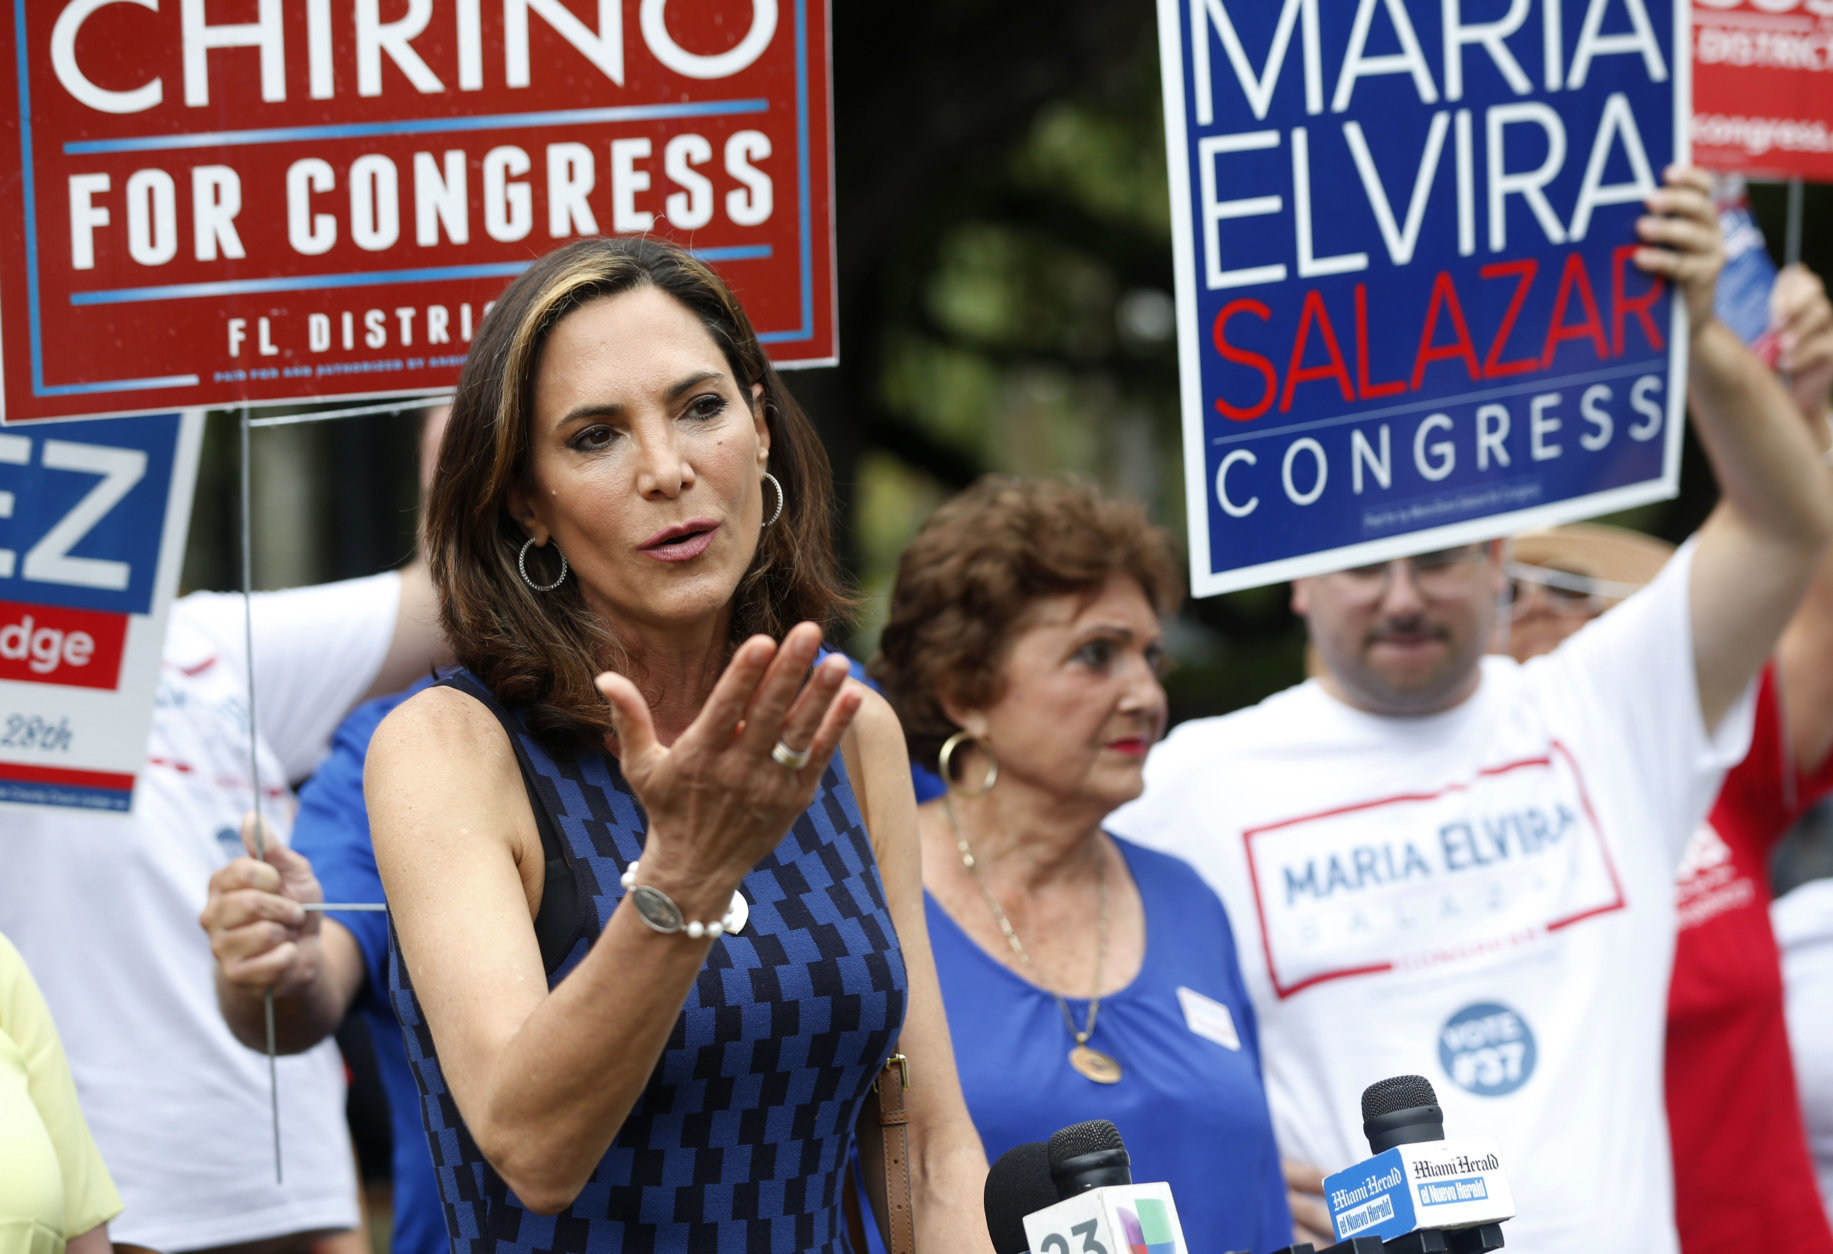 FILE - In this Aug. 28, 2018, file photo, Maria Elvira Salazar speaks at a campaign event in Coral Gables, Fla. Salazar is running against former Clinton administration Cabinet member and University of Miami president, Democrat Donna Shalala. (AP Photo/Wilfredo Lee, File)